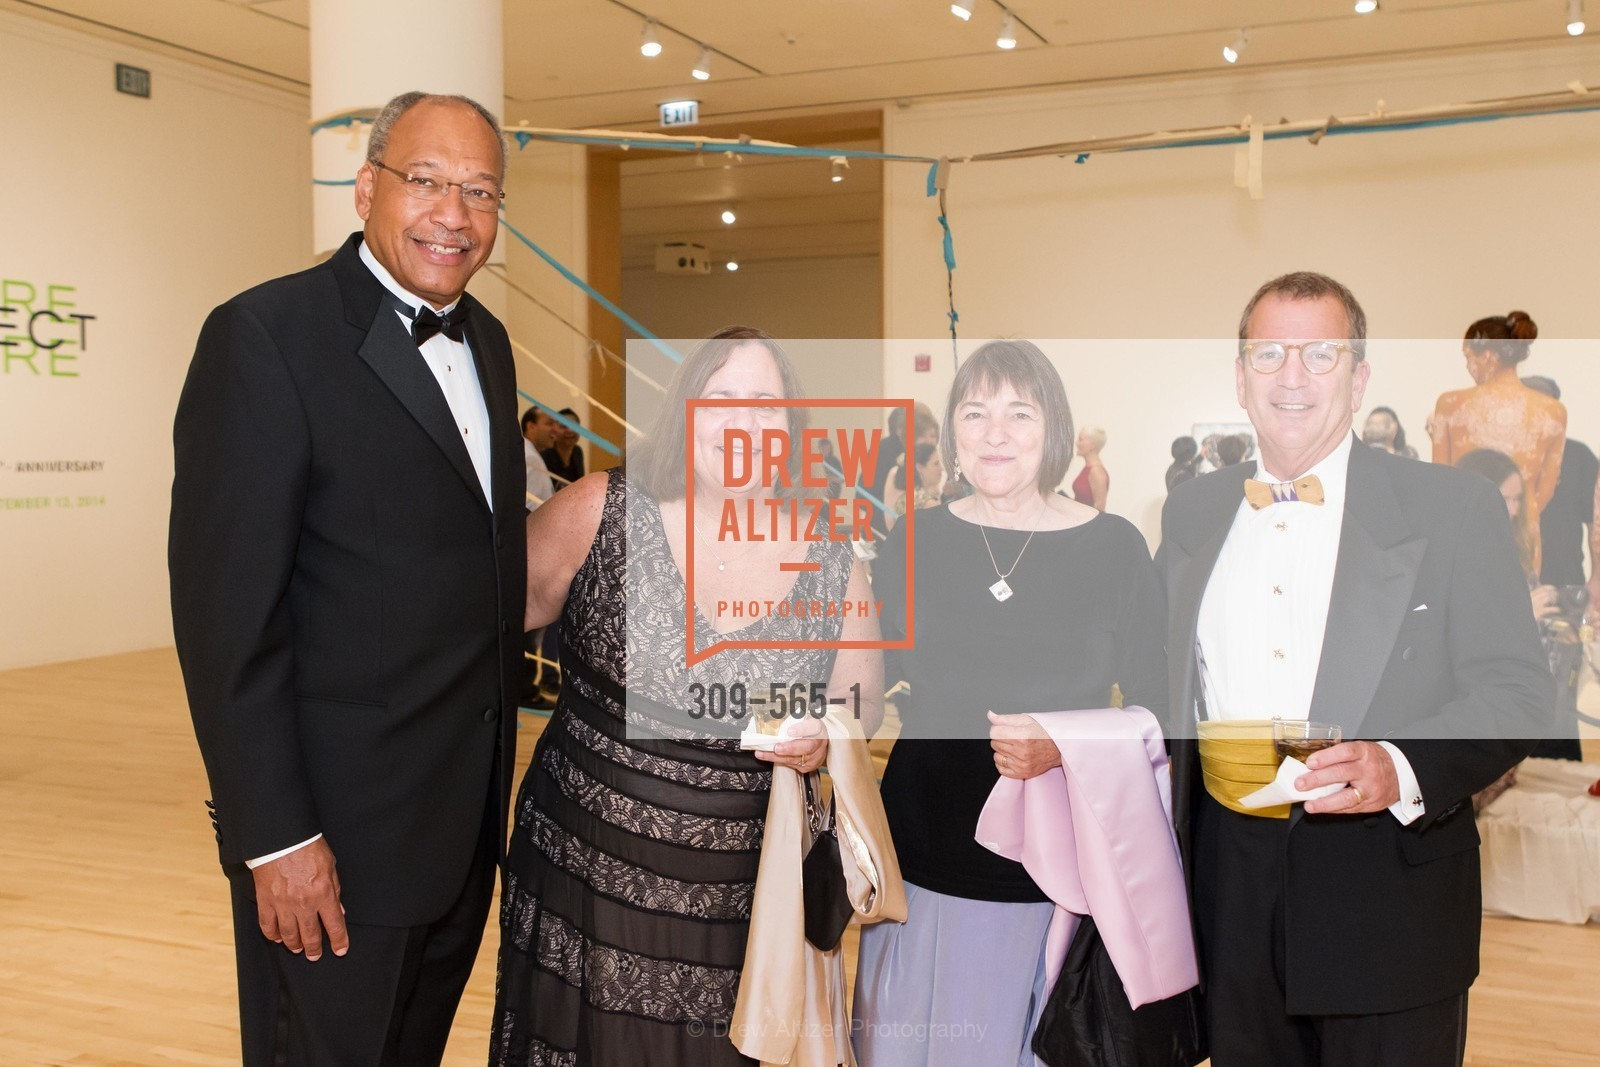 Roger Bowie, Peggy Dalton, Mary Alice Bowie, Rush Dalton, GLAAD GALA Kick-Off Party Hosted by SAKS FIFTH AVENUE, Saks Fifth Avenue. 384 Post Street, September 12th, 2014,Drew Altizer, Drew Altizer Photography, full-service agency, private events, San Francisco photographer, photographer california